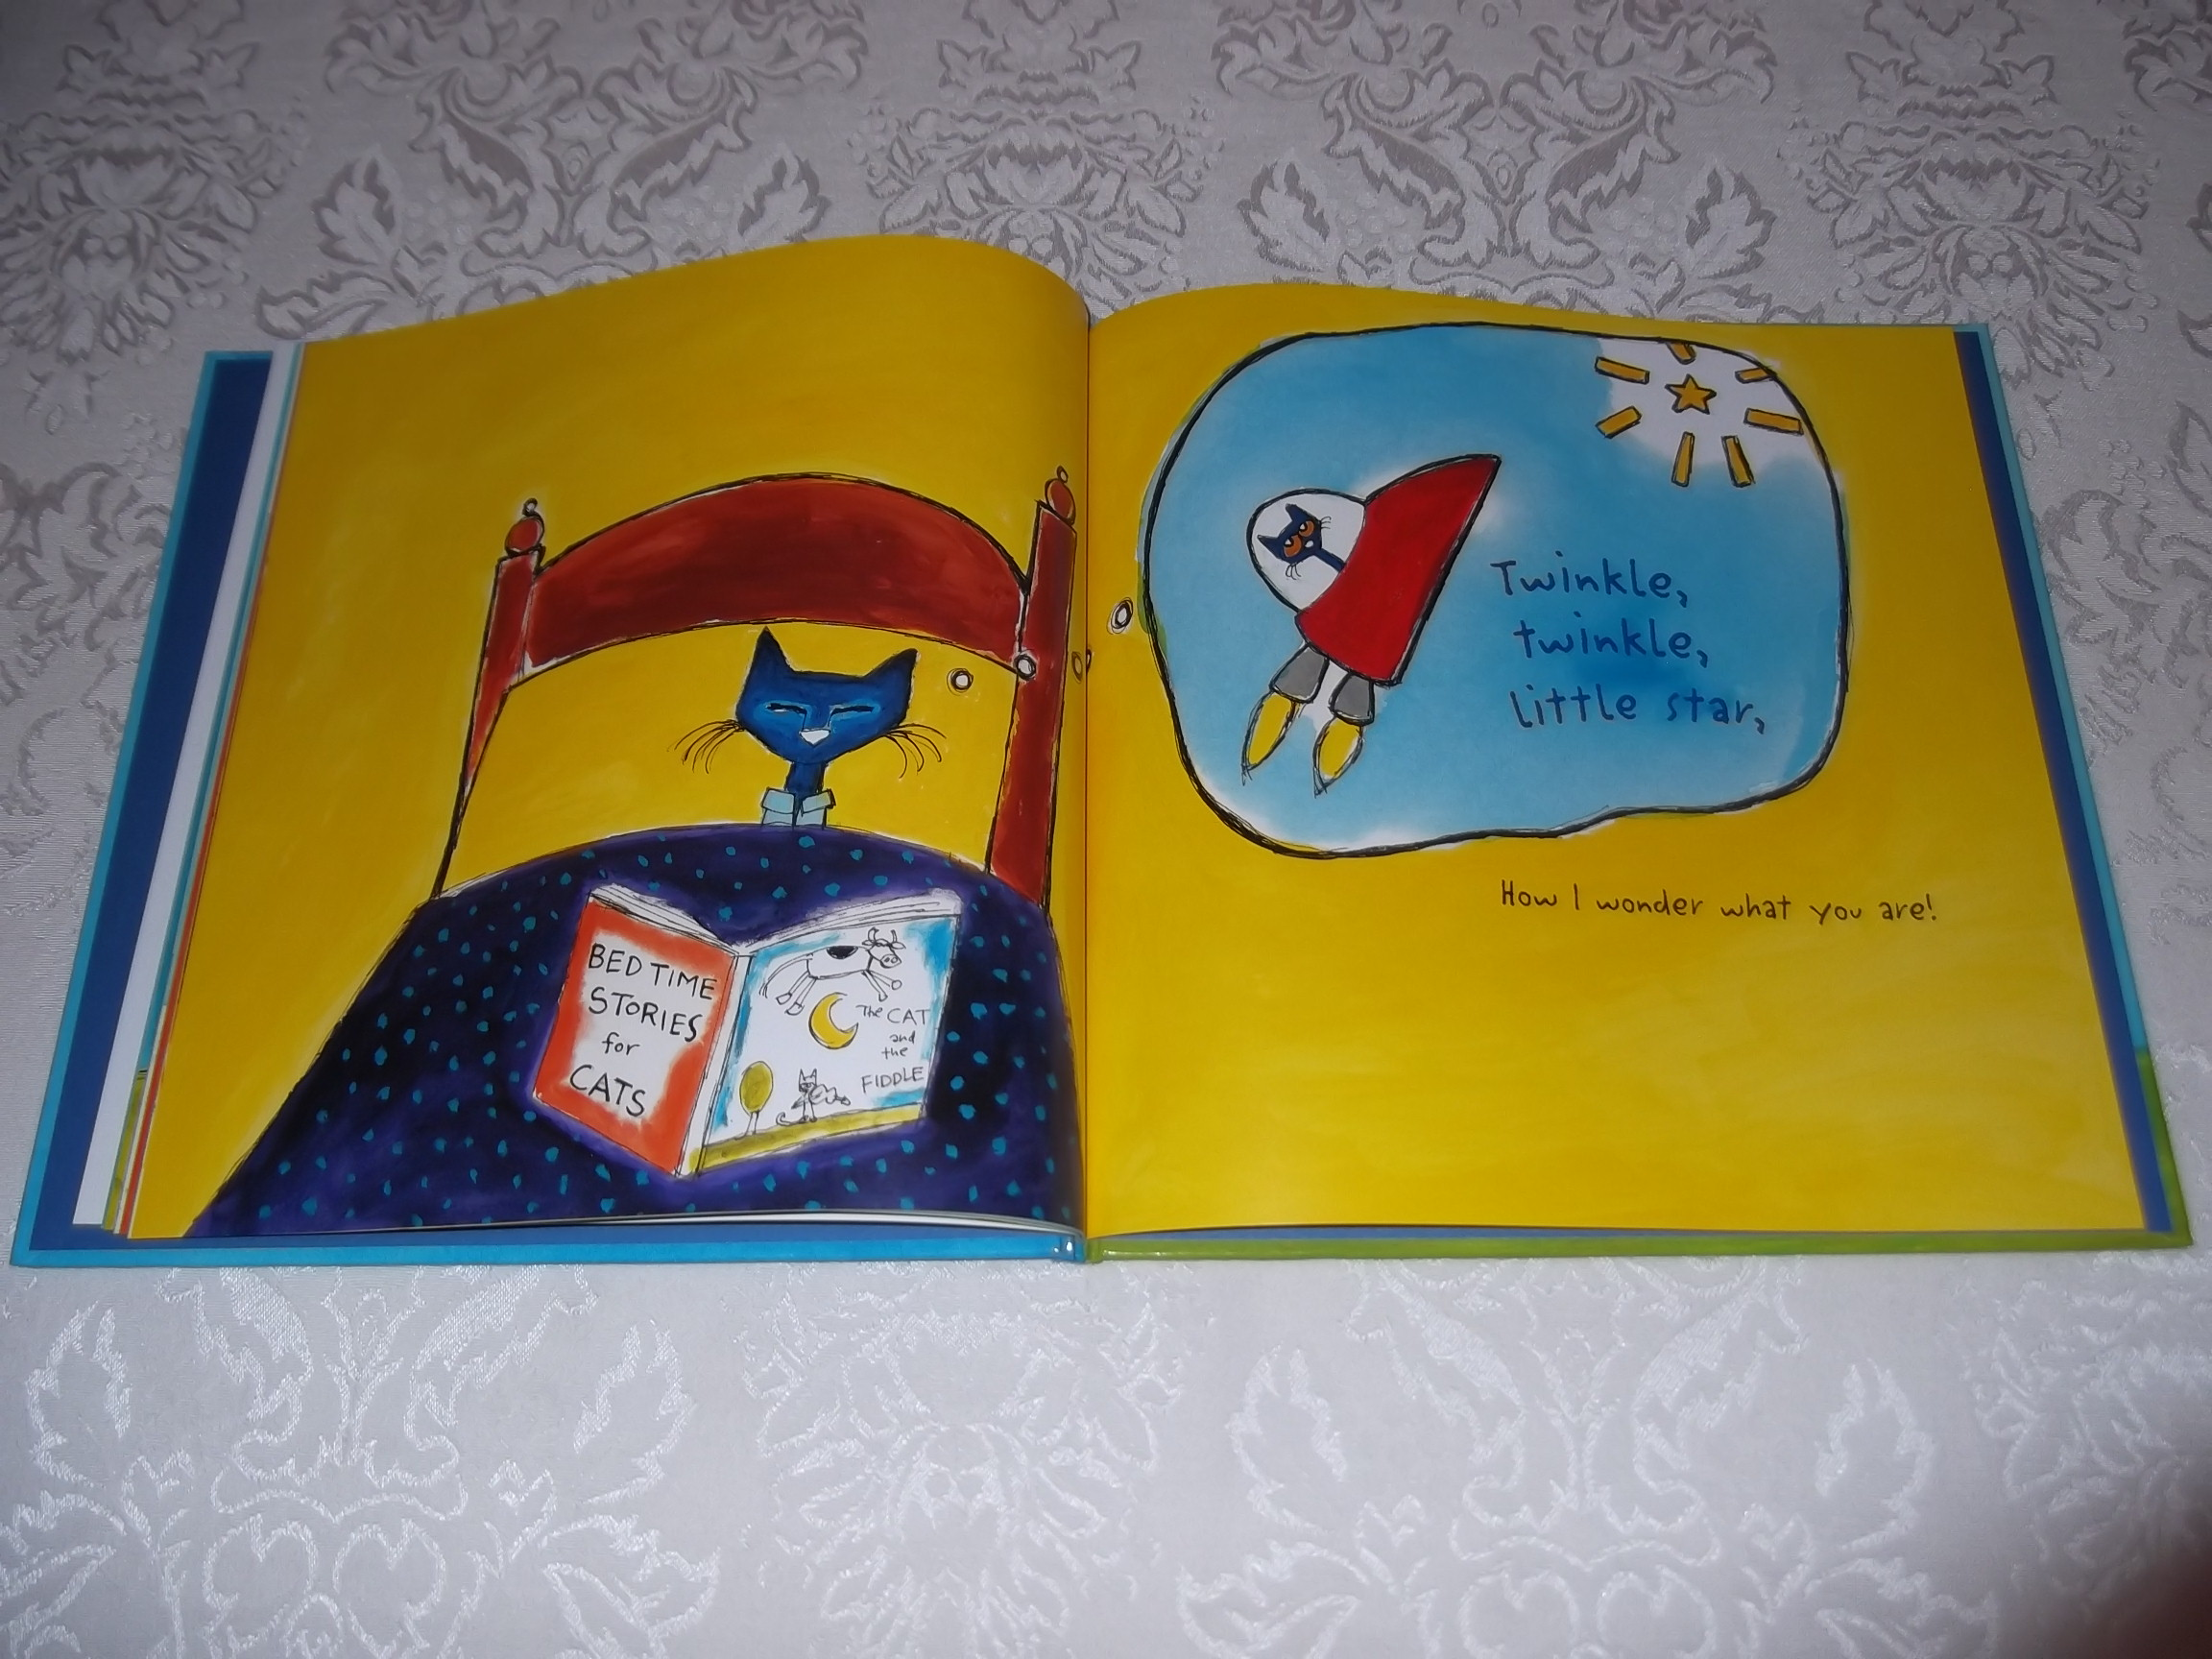 Image 4 of Pete the Cat Twinkle, Twinkle, Little Star James Dean Brand New HC